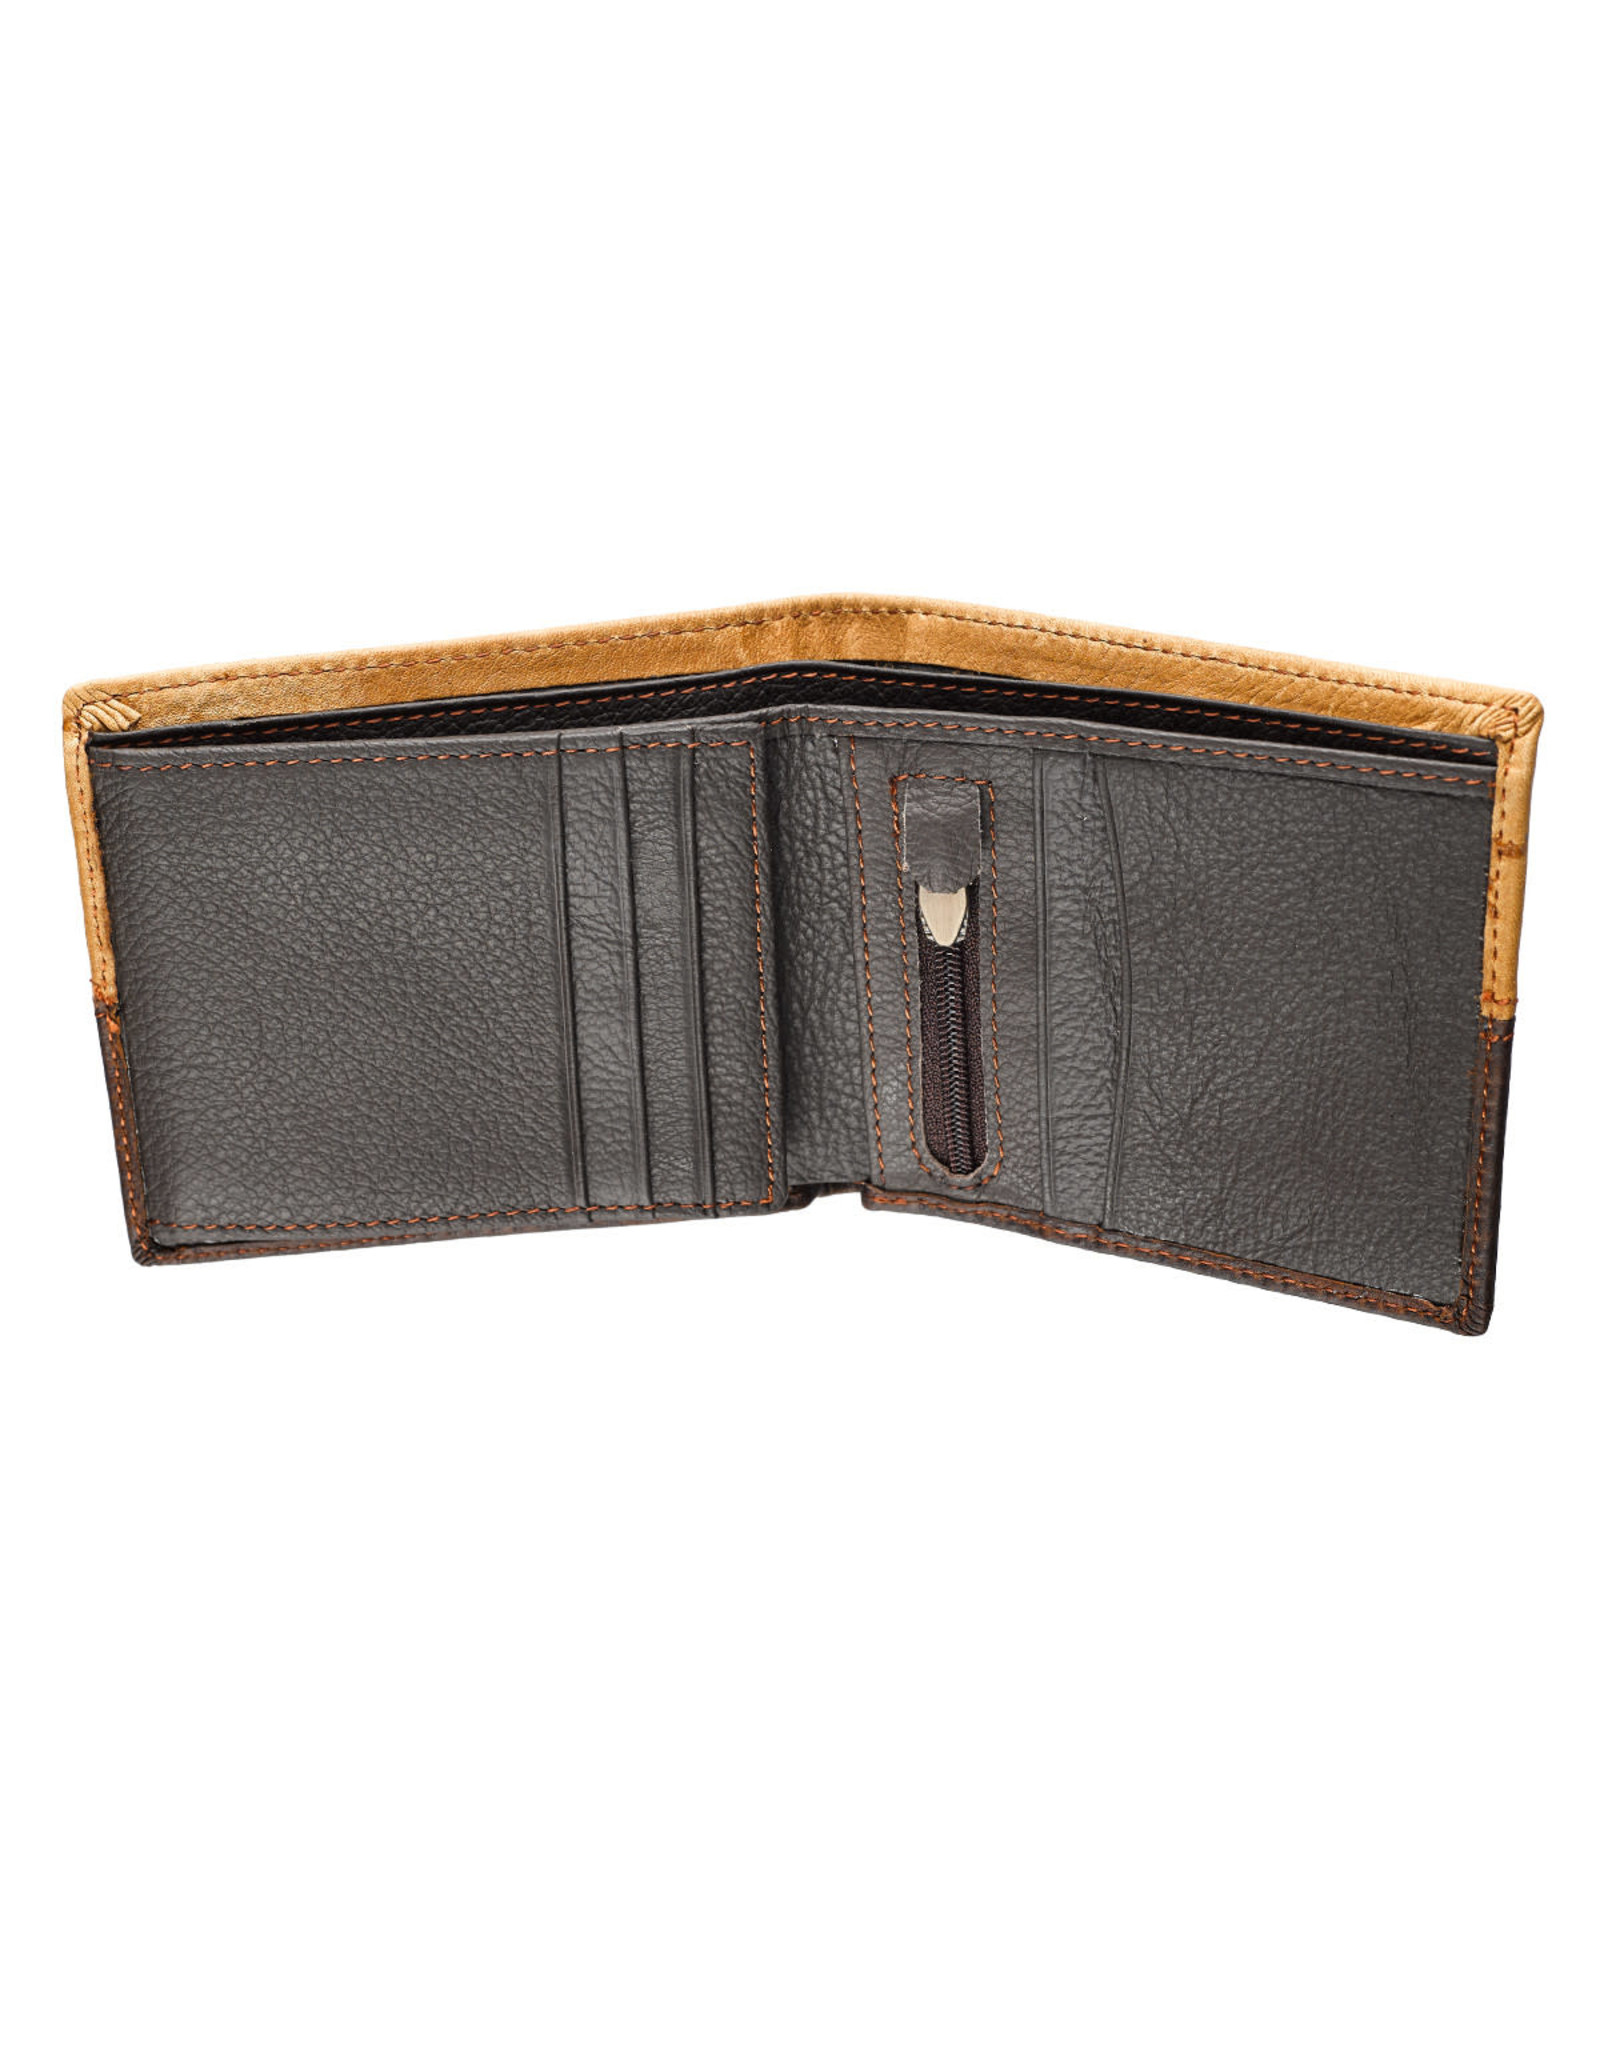 Two-Tone Genuine Leather Wallet With Cross Stud